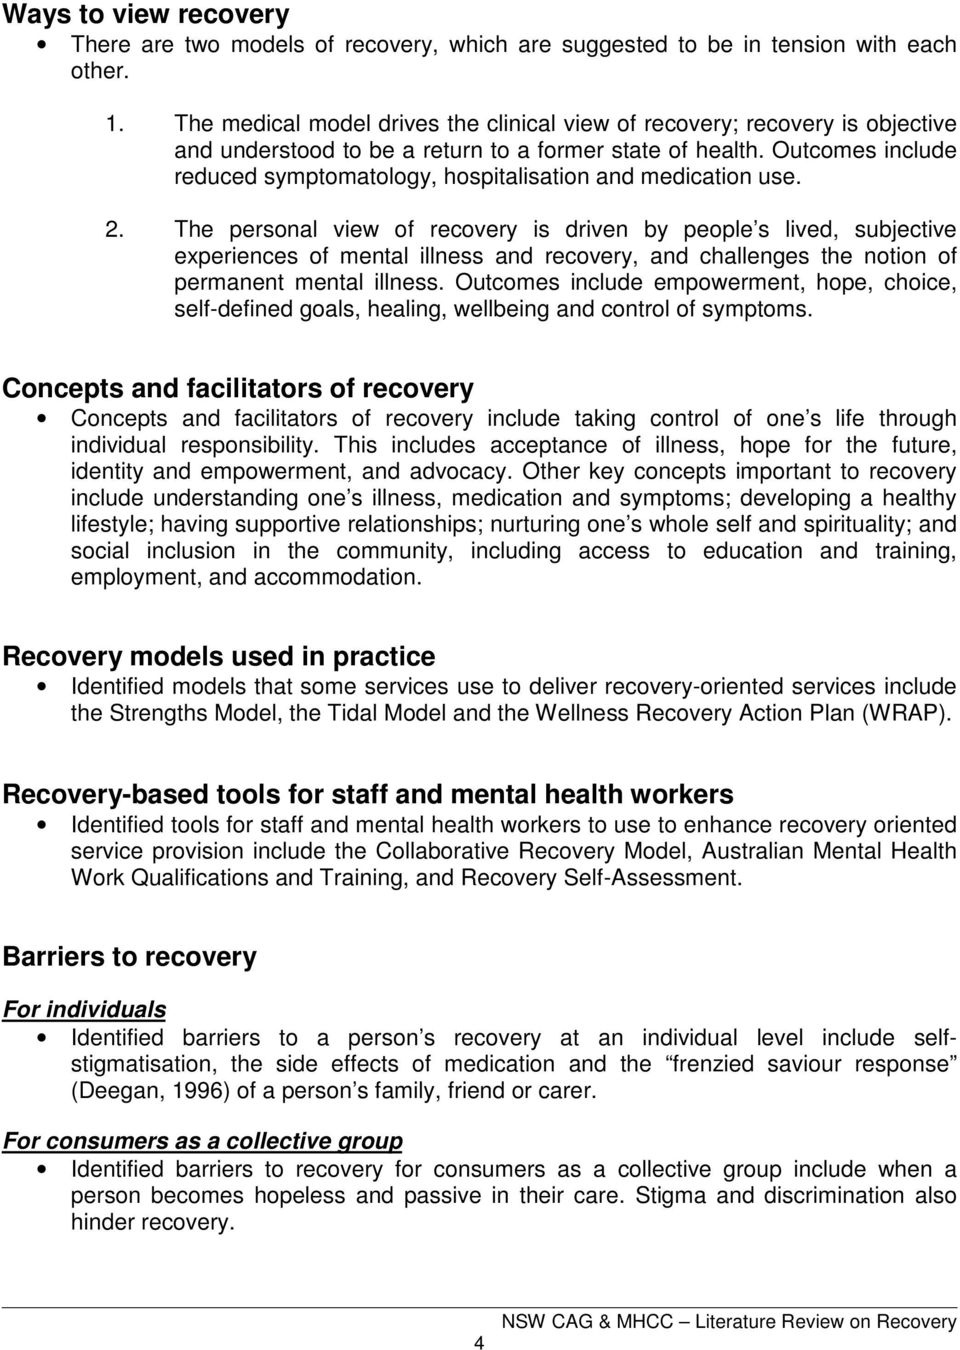 Literature Review On Recovery Pdf